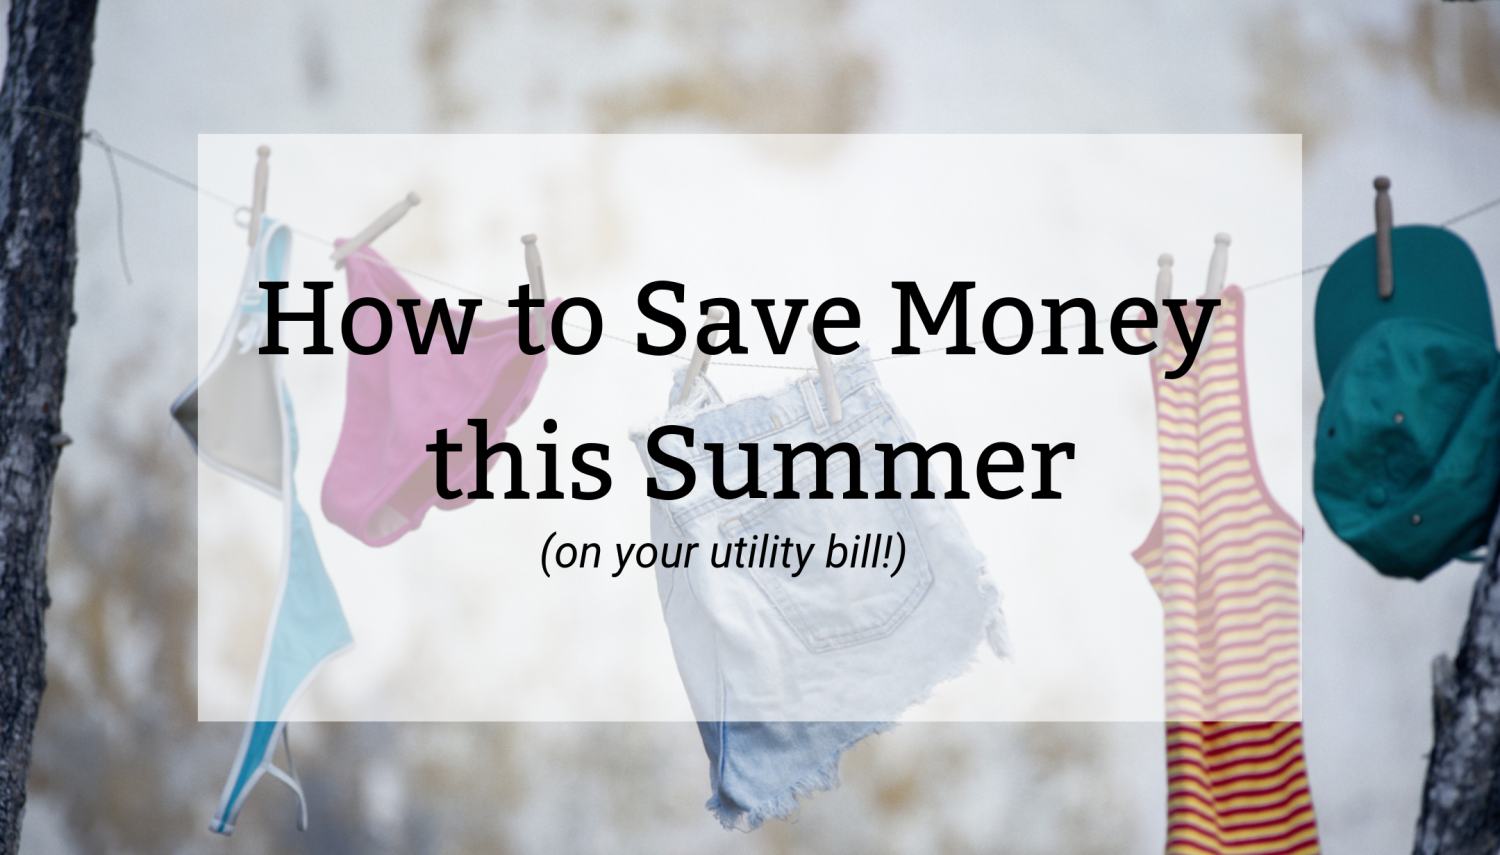 How to Save Money This Summer ON your Utility Bill